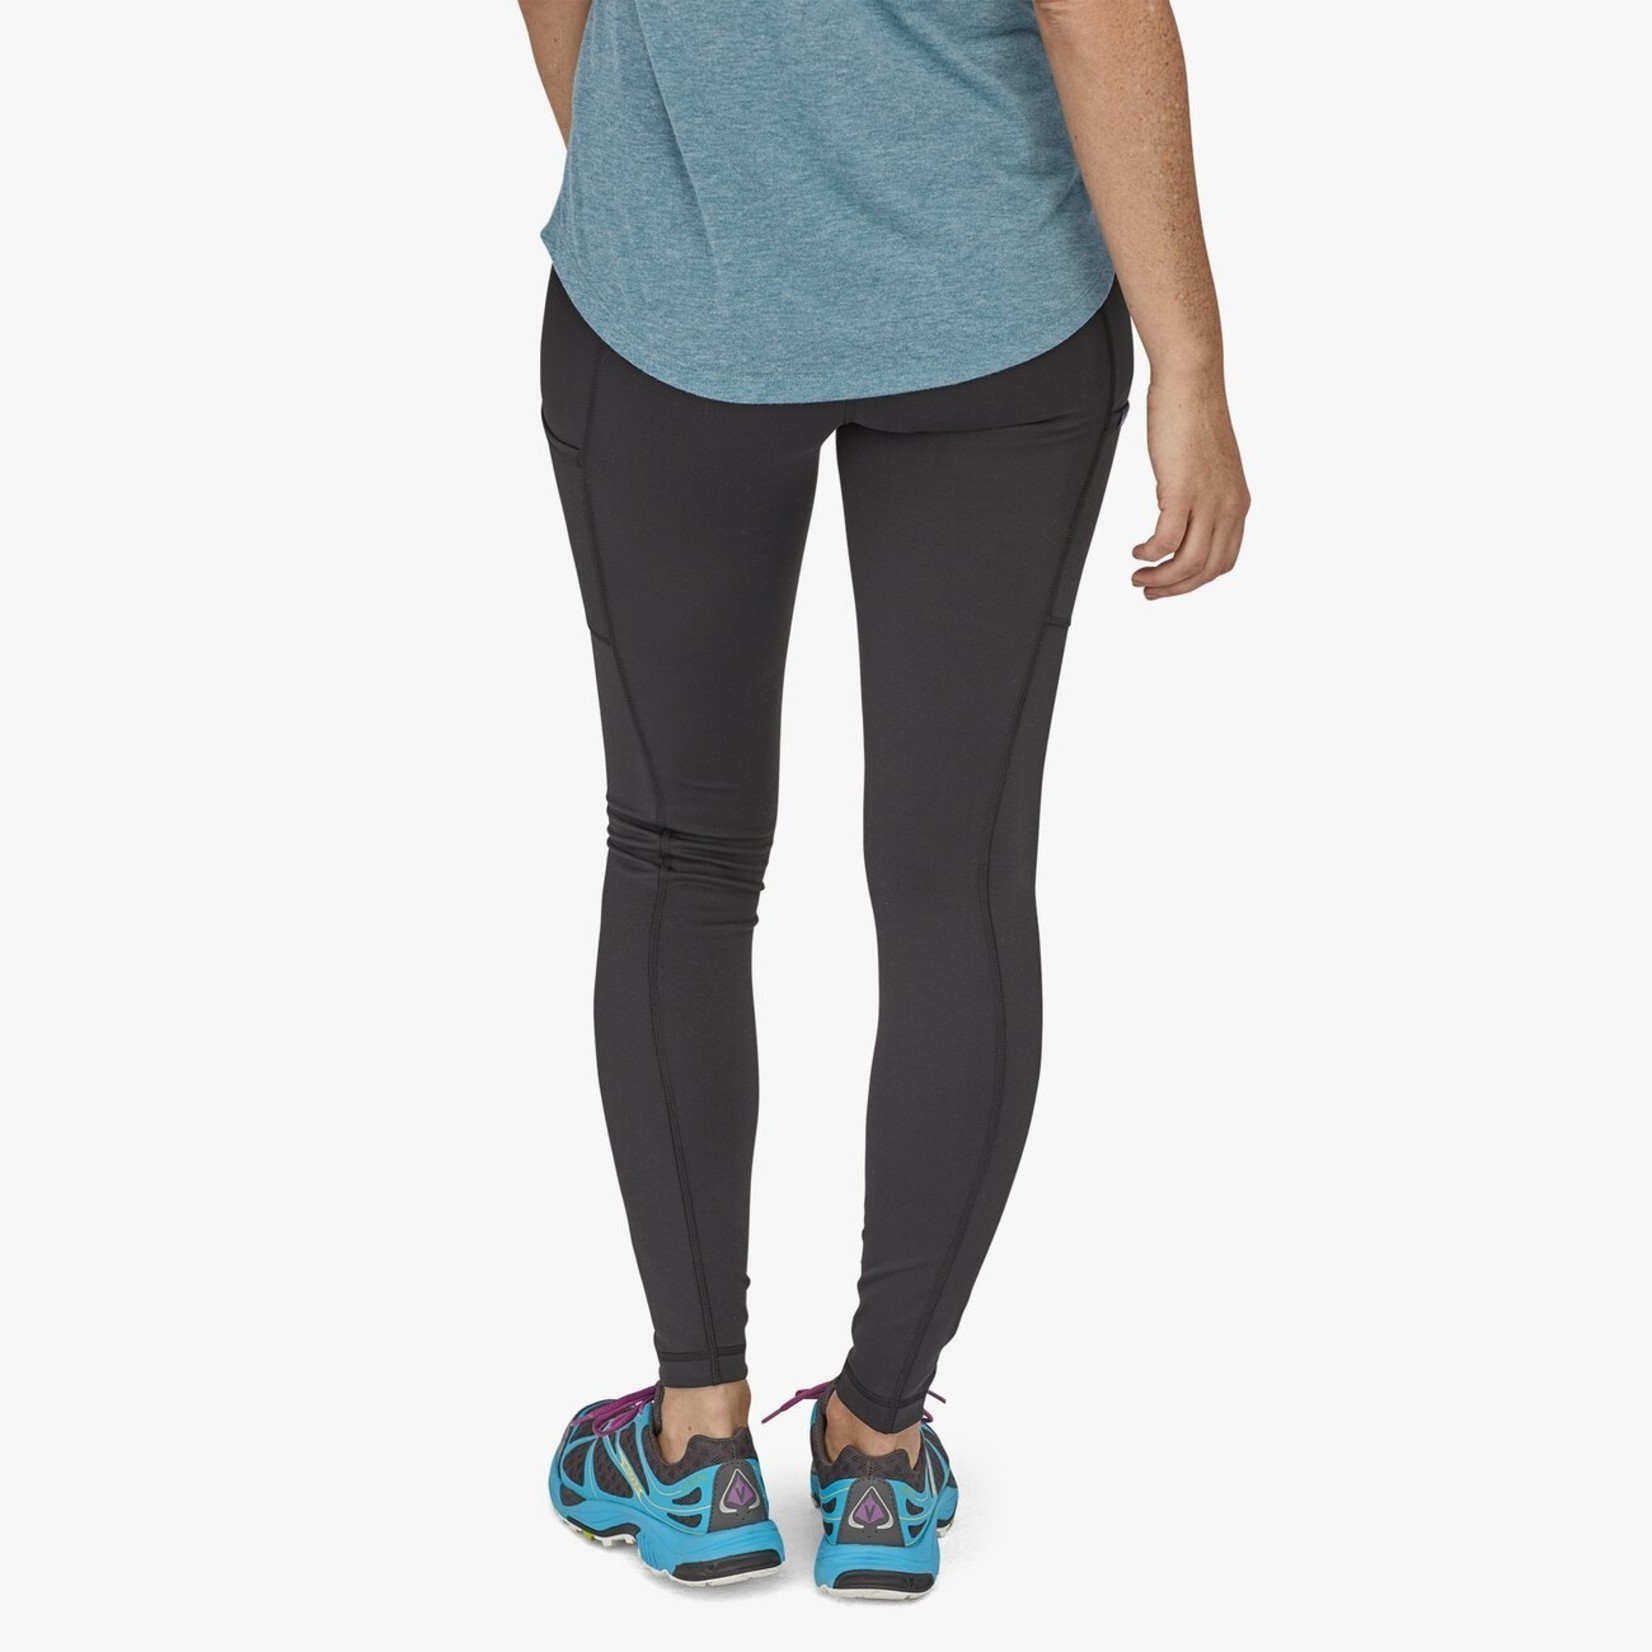 Patagonia Patagonia Women's Pack Out Tights